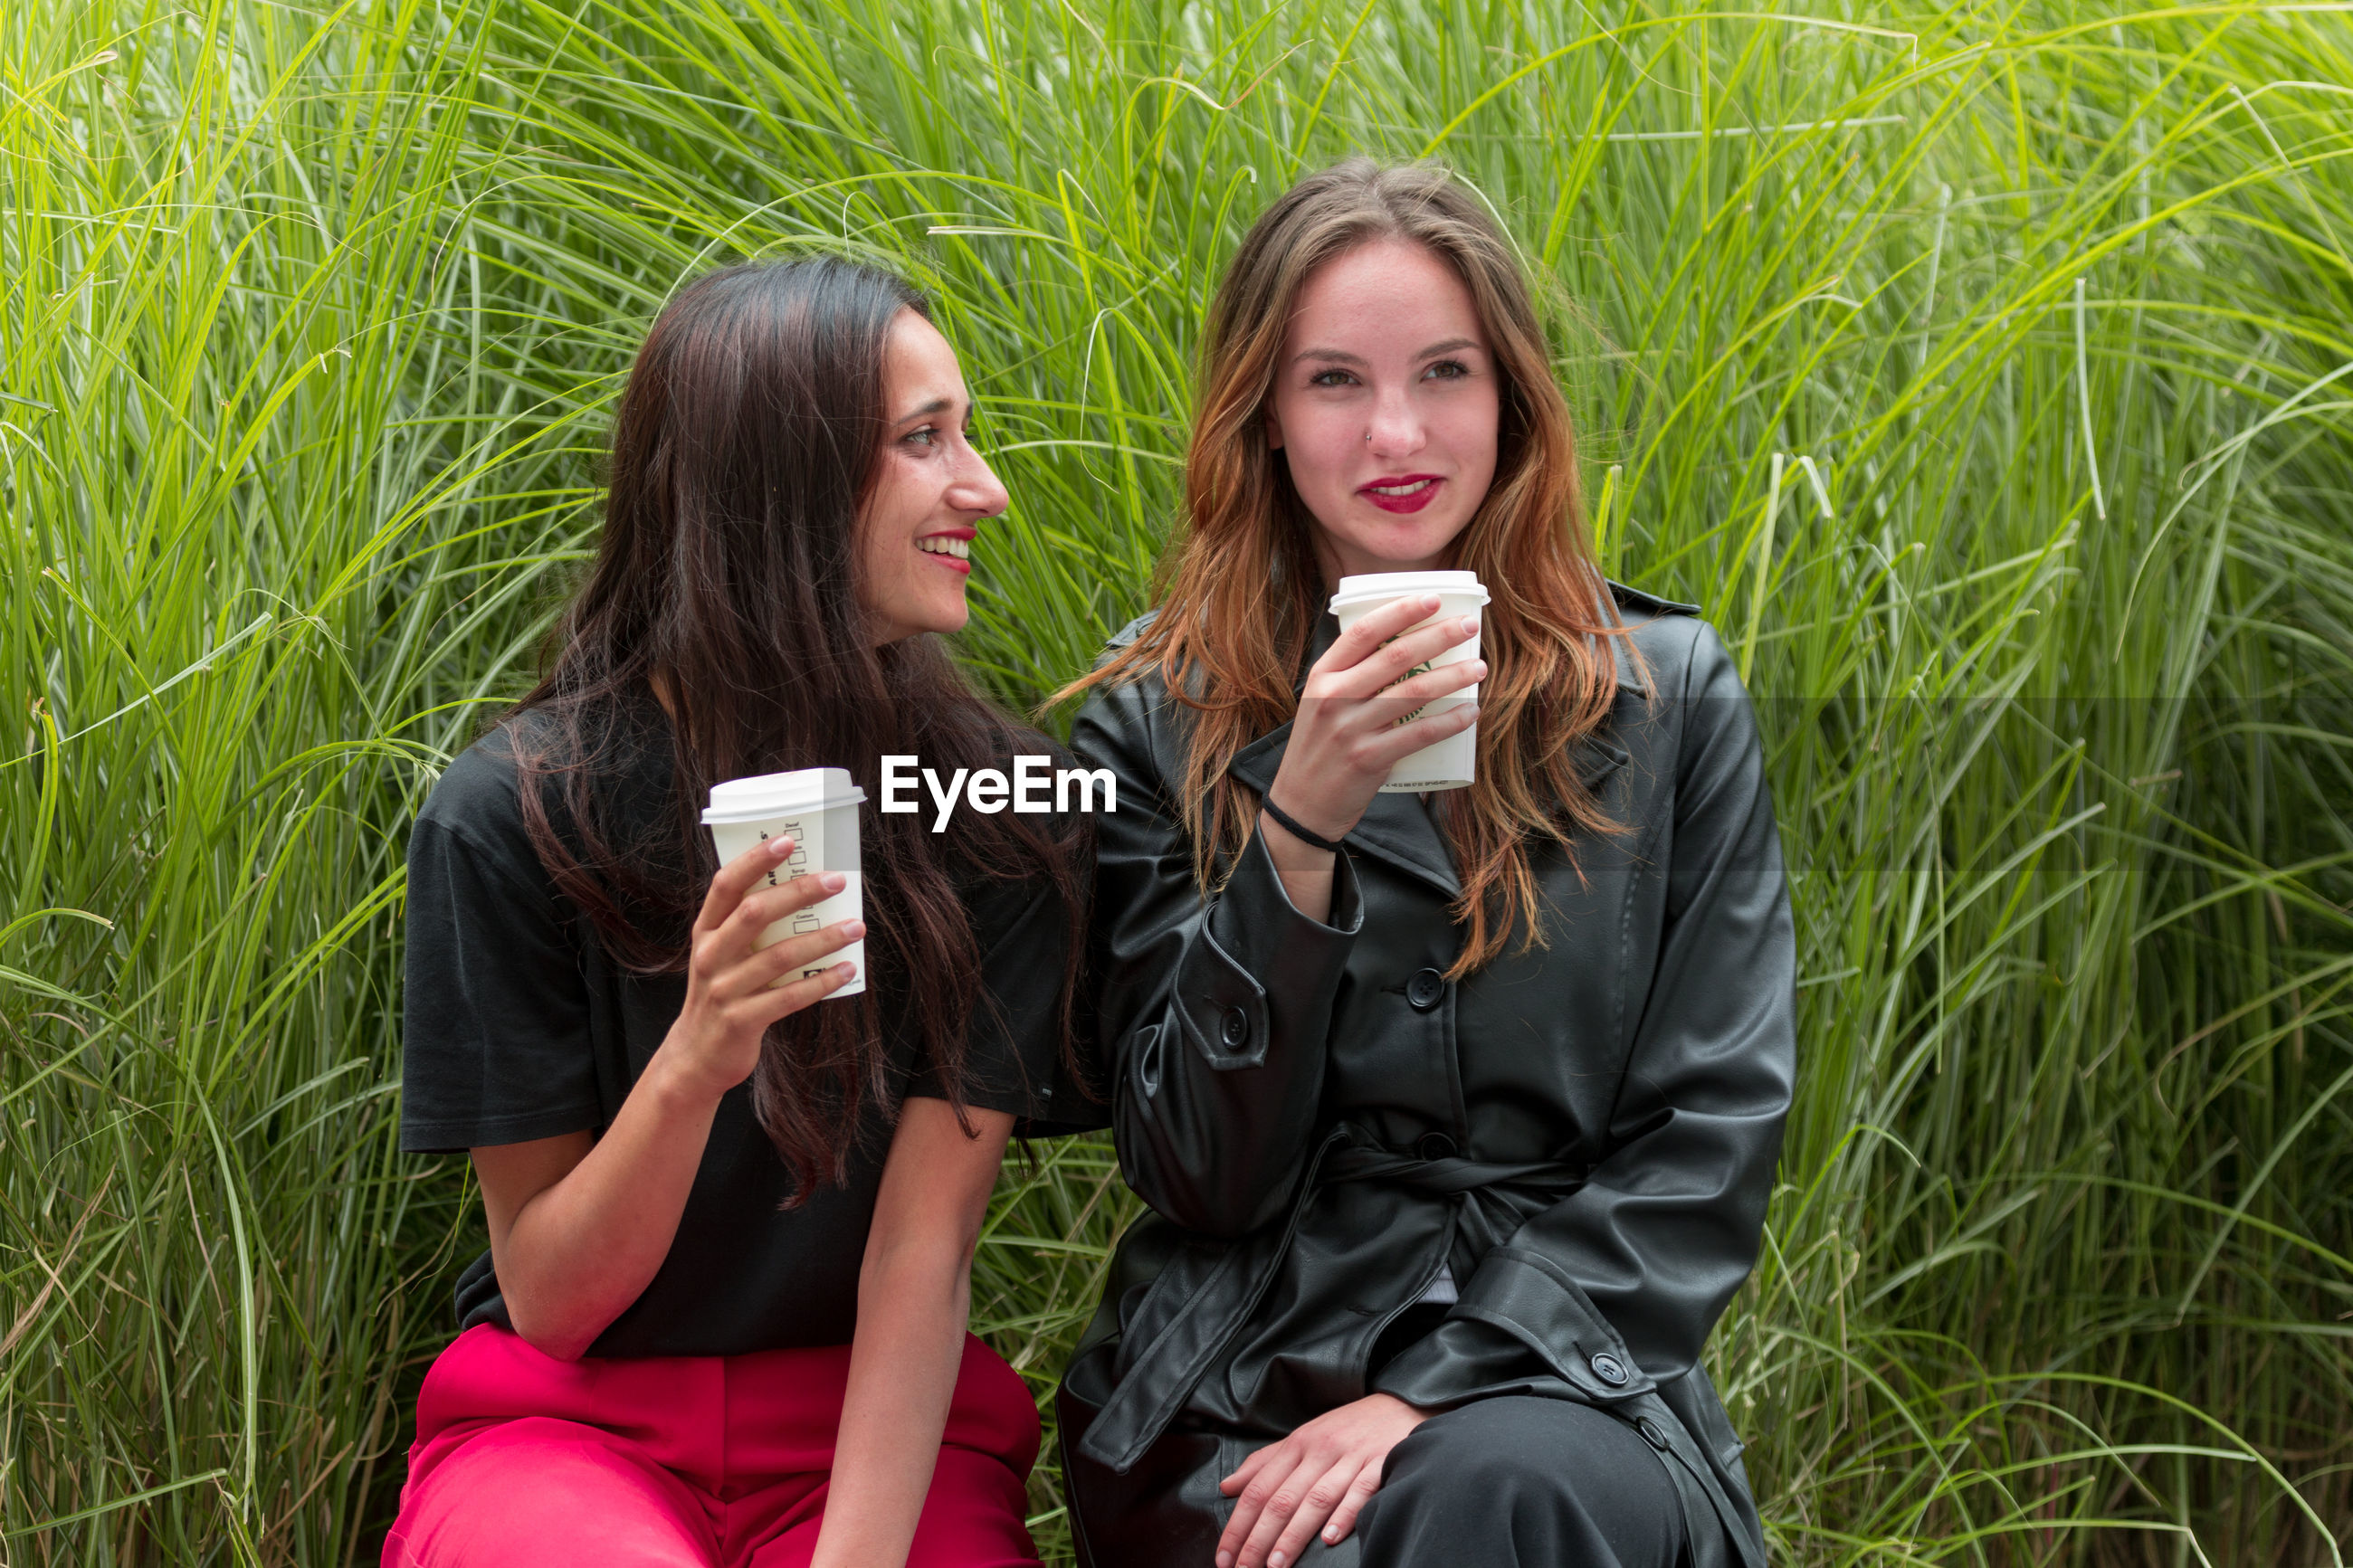 Young women talking while having coffee against plants